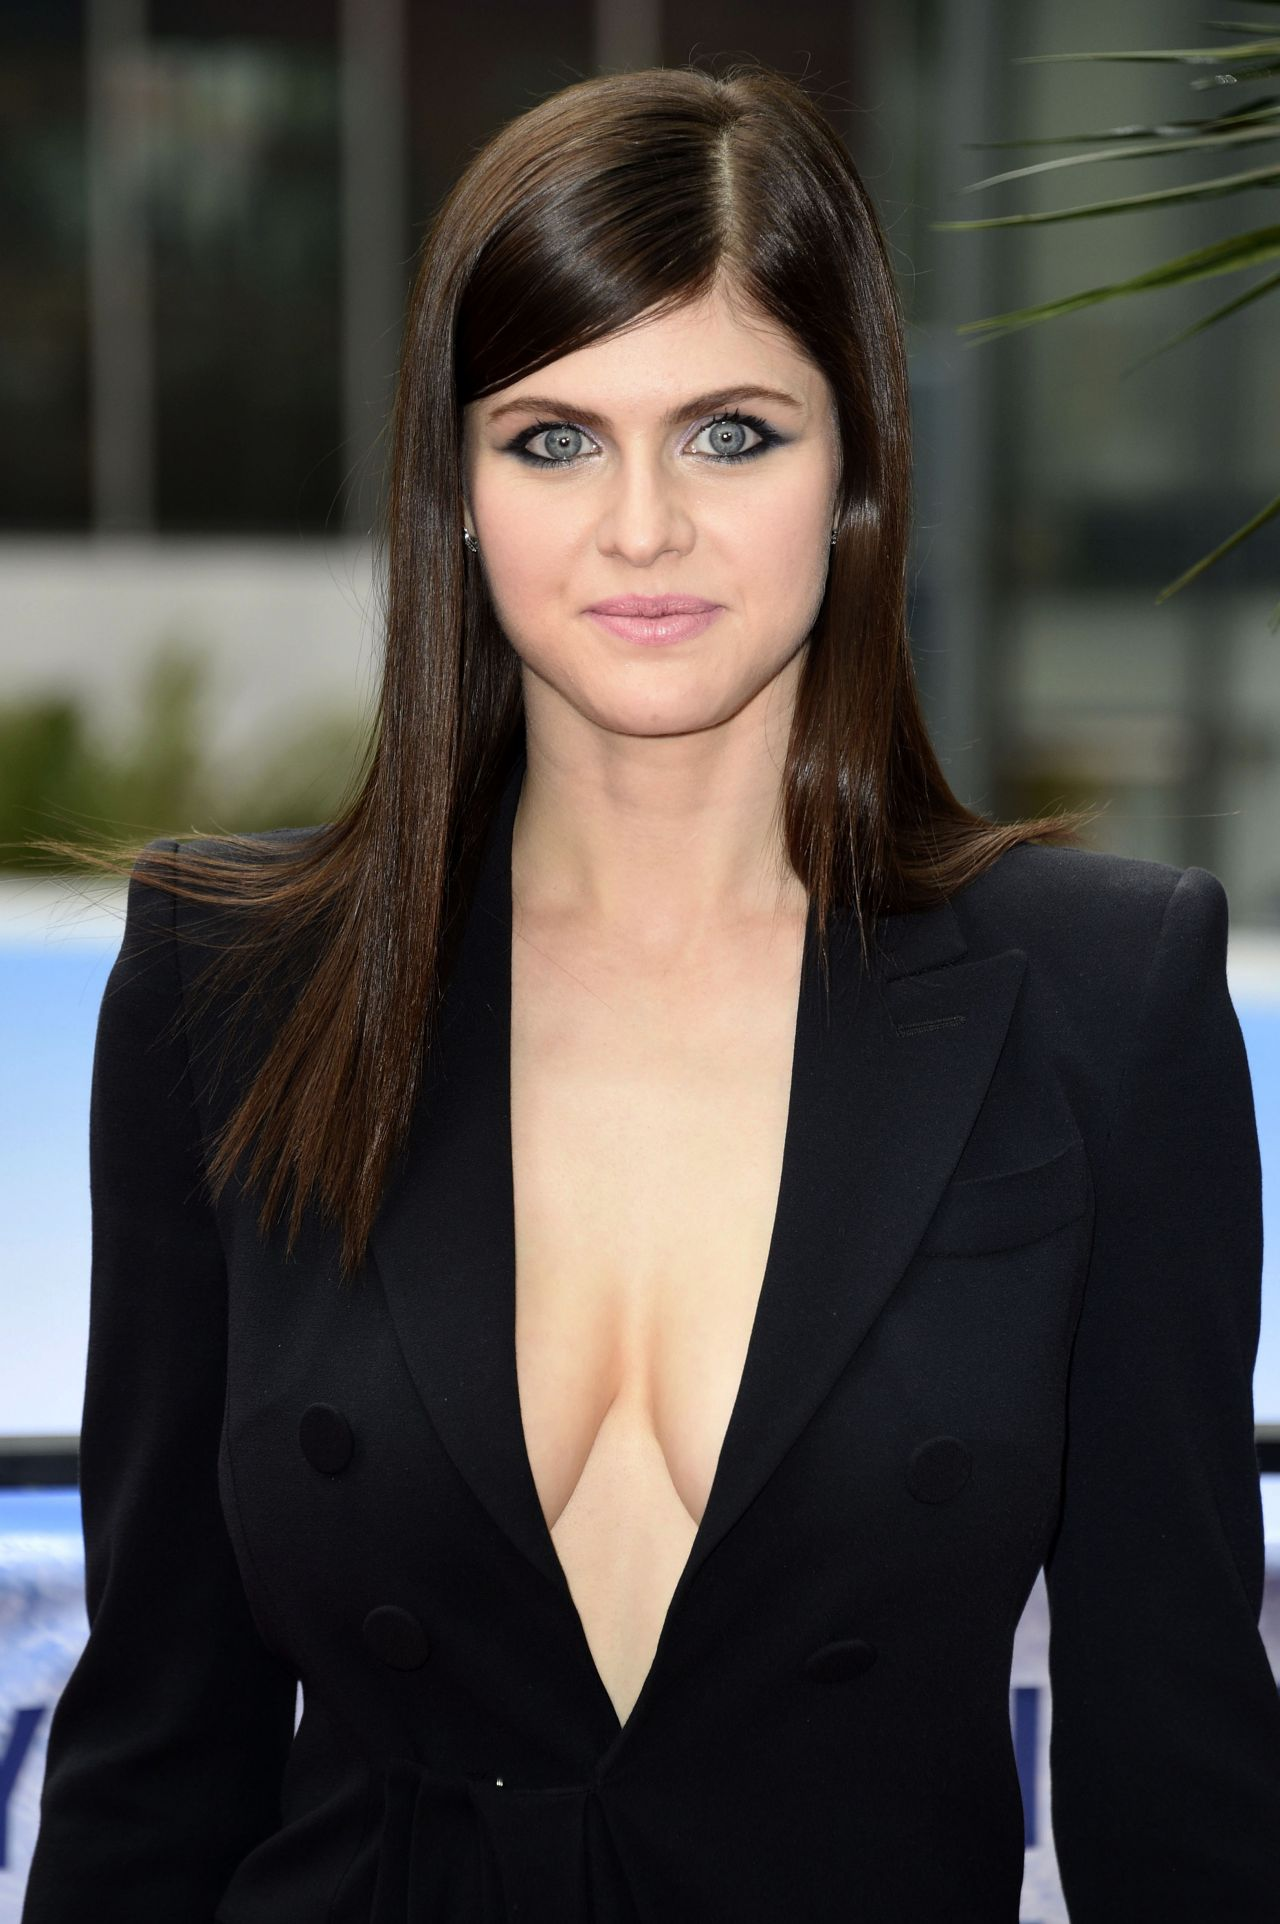 Pictures Alexandra Daddario nudes (28 foto and video), Tits, Cleavage, Selfie, cameltoe 2020